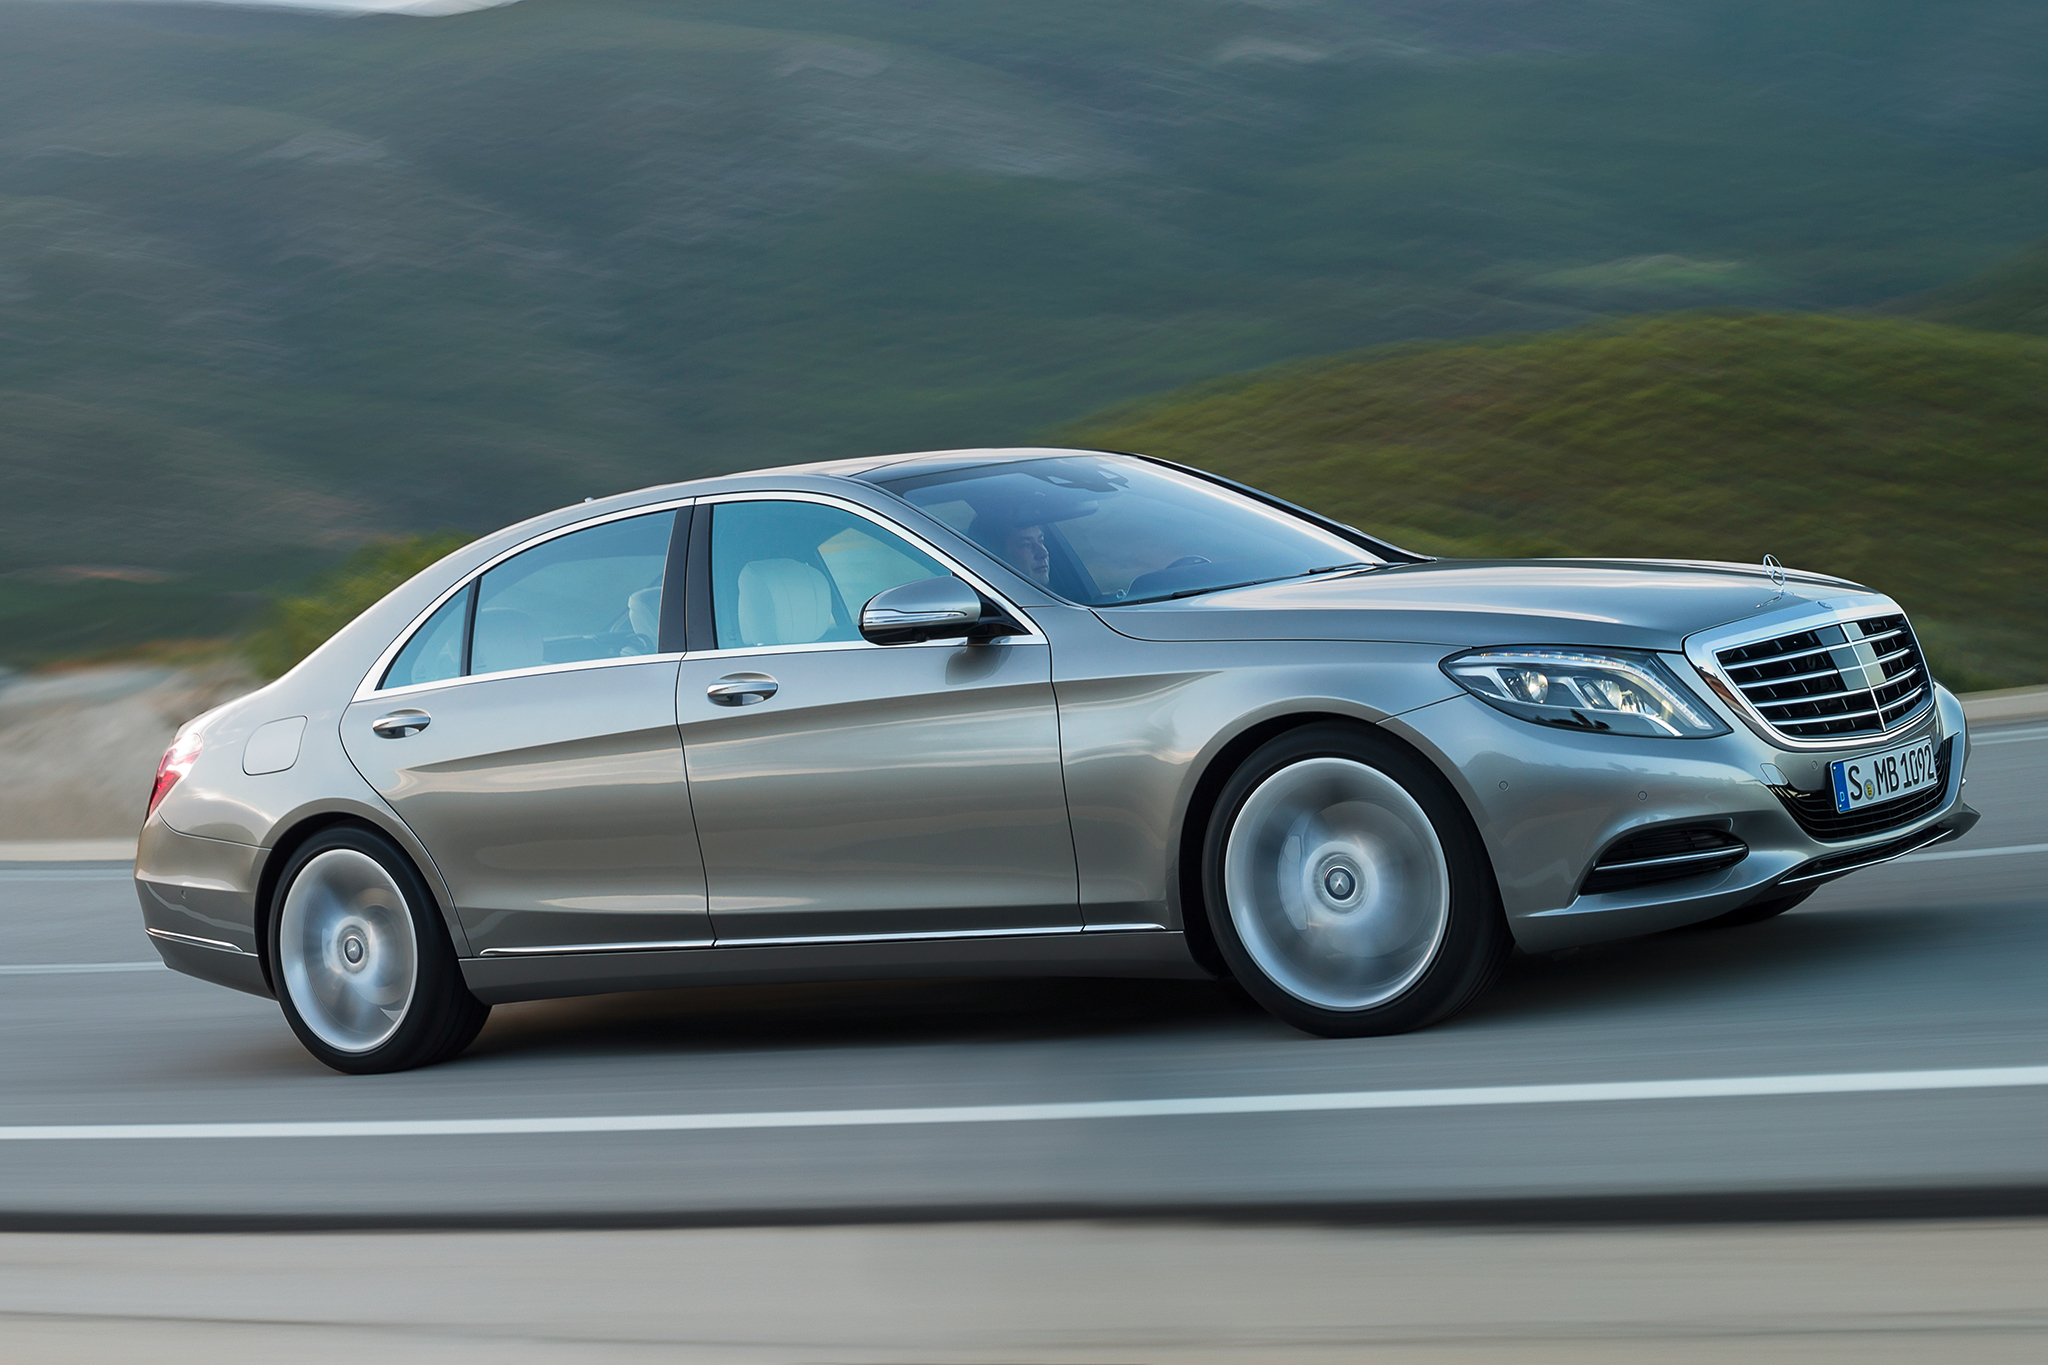 A review of 2015 mercedes benz s class image 16 for 2015 s550 mercedes benz